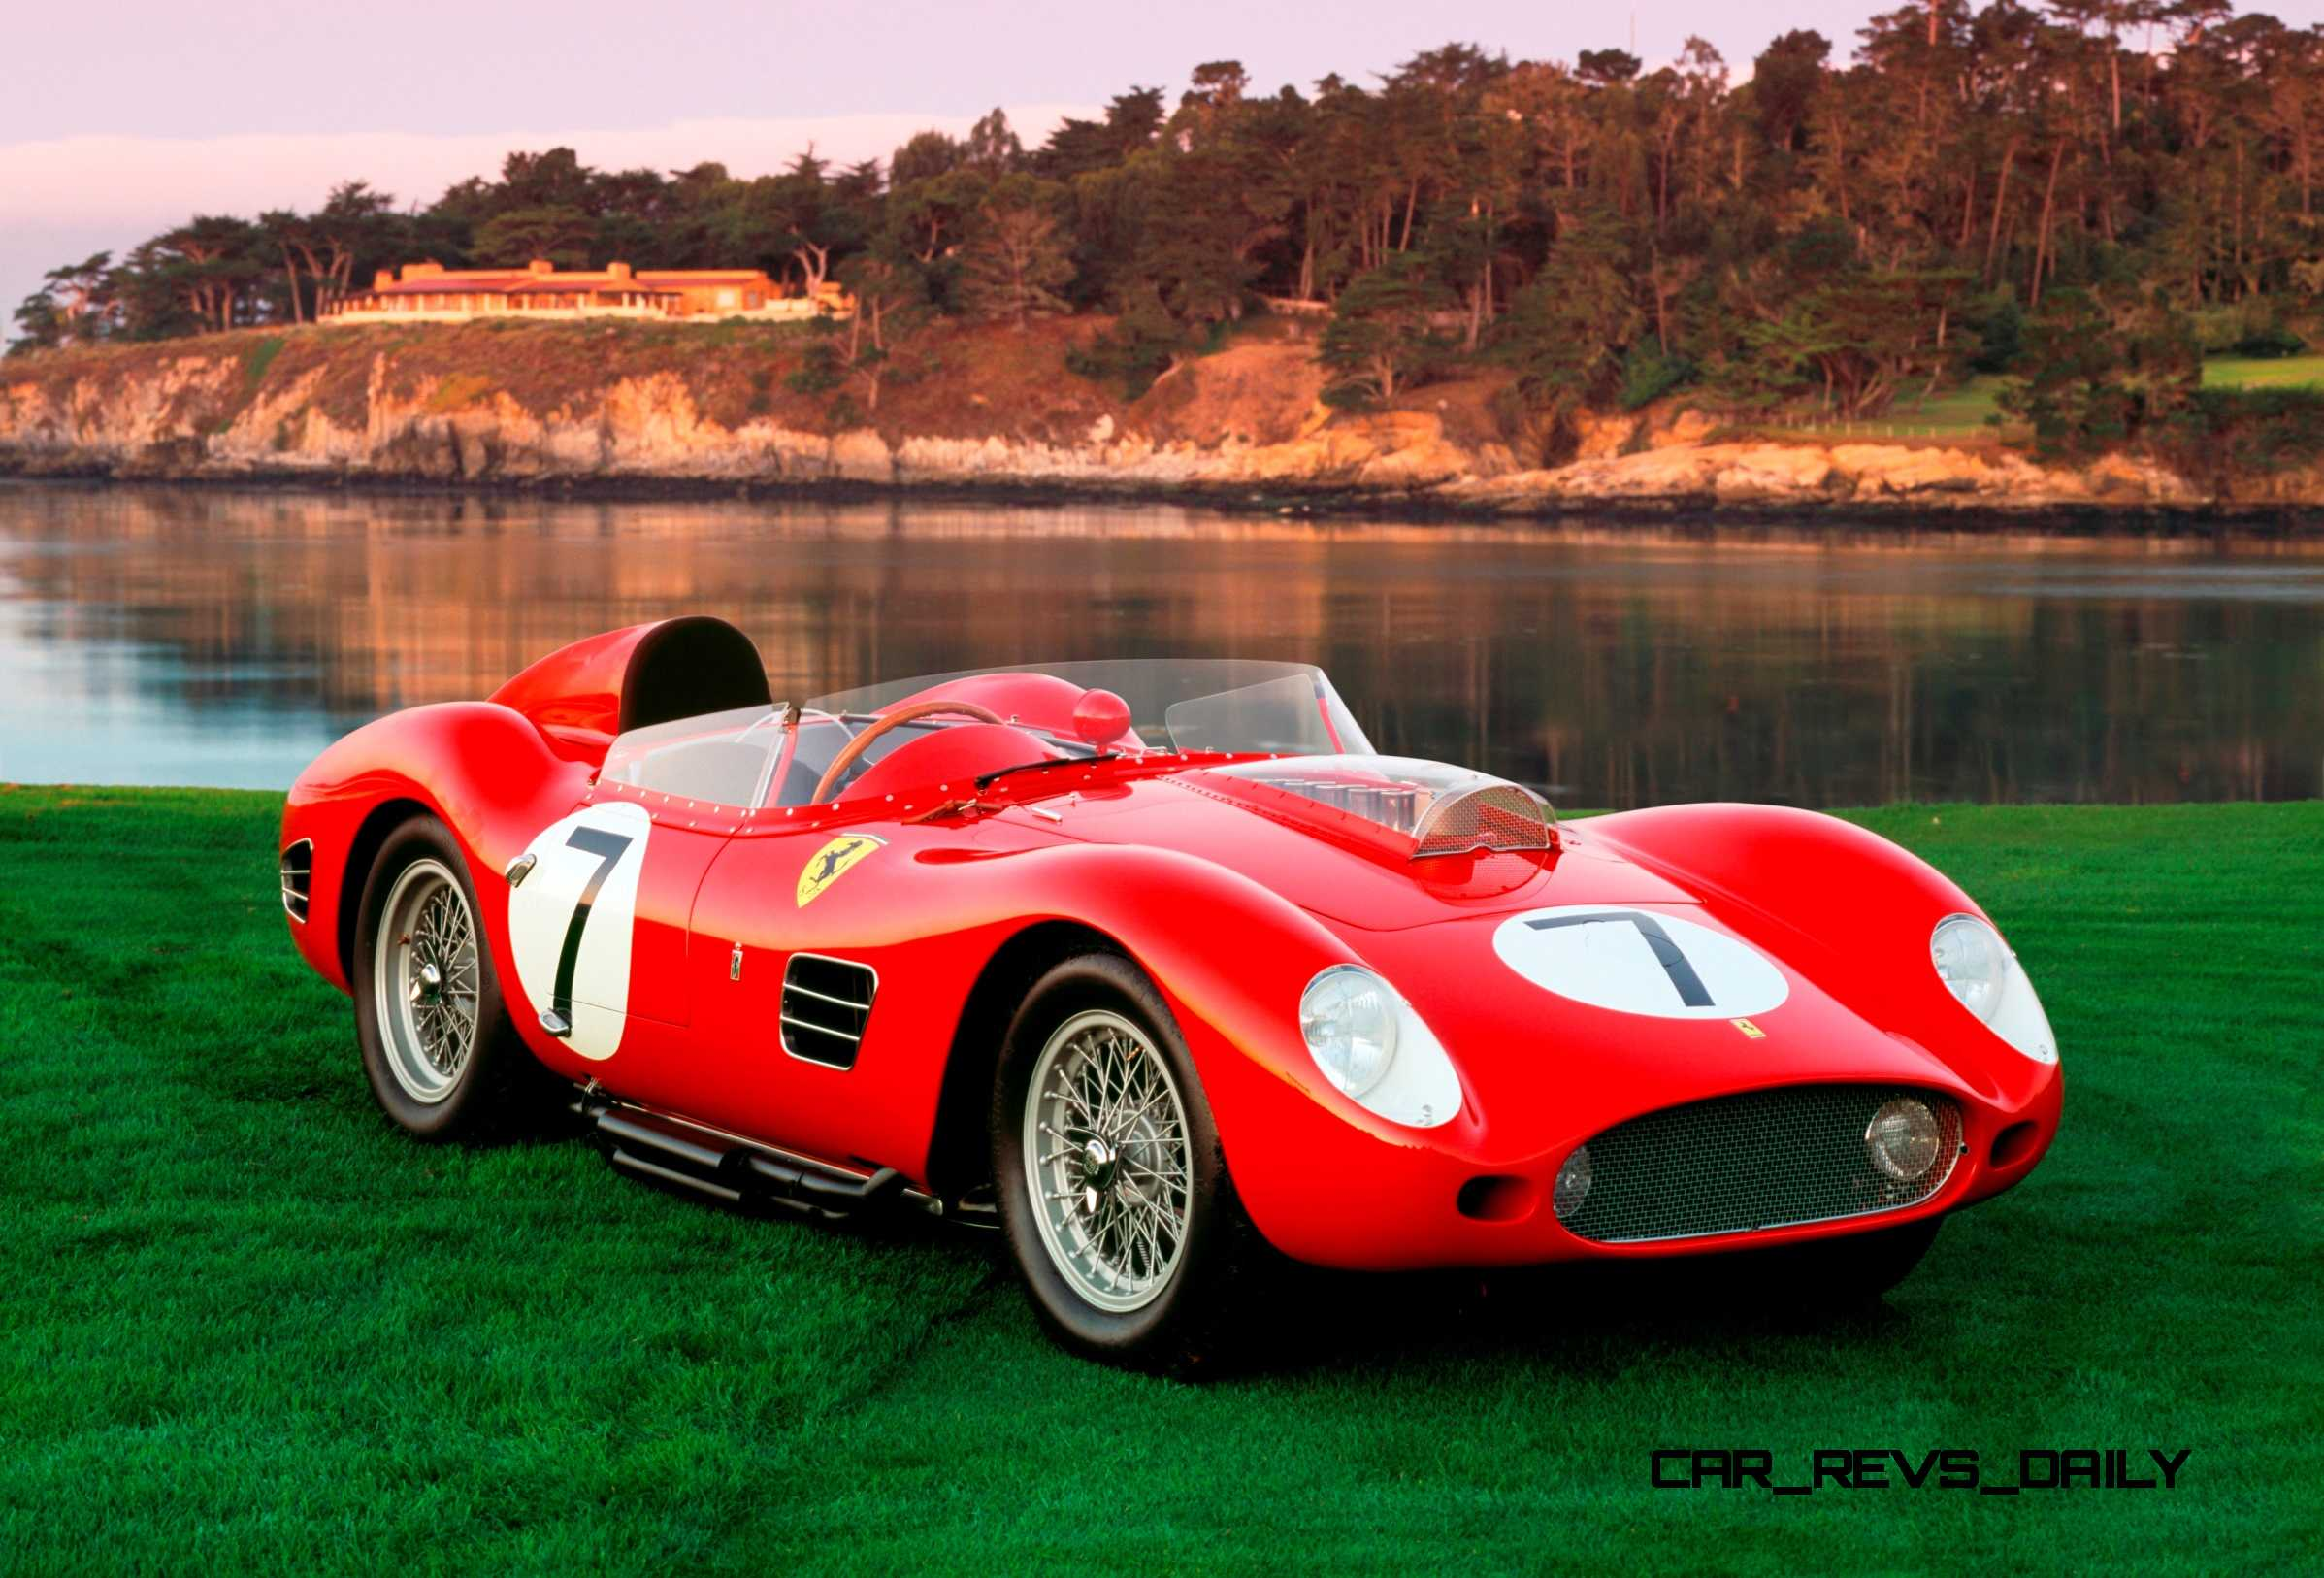 Rally Car Racing >> Pebble Beach 2014 - Ferrari Testa Rossa Showcase